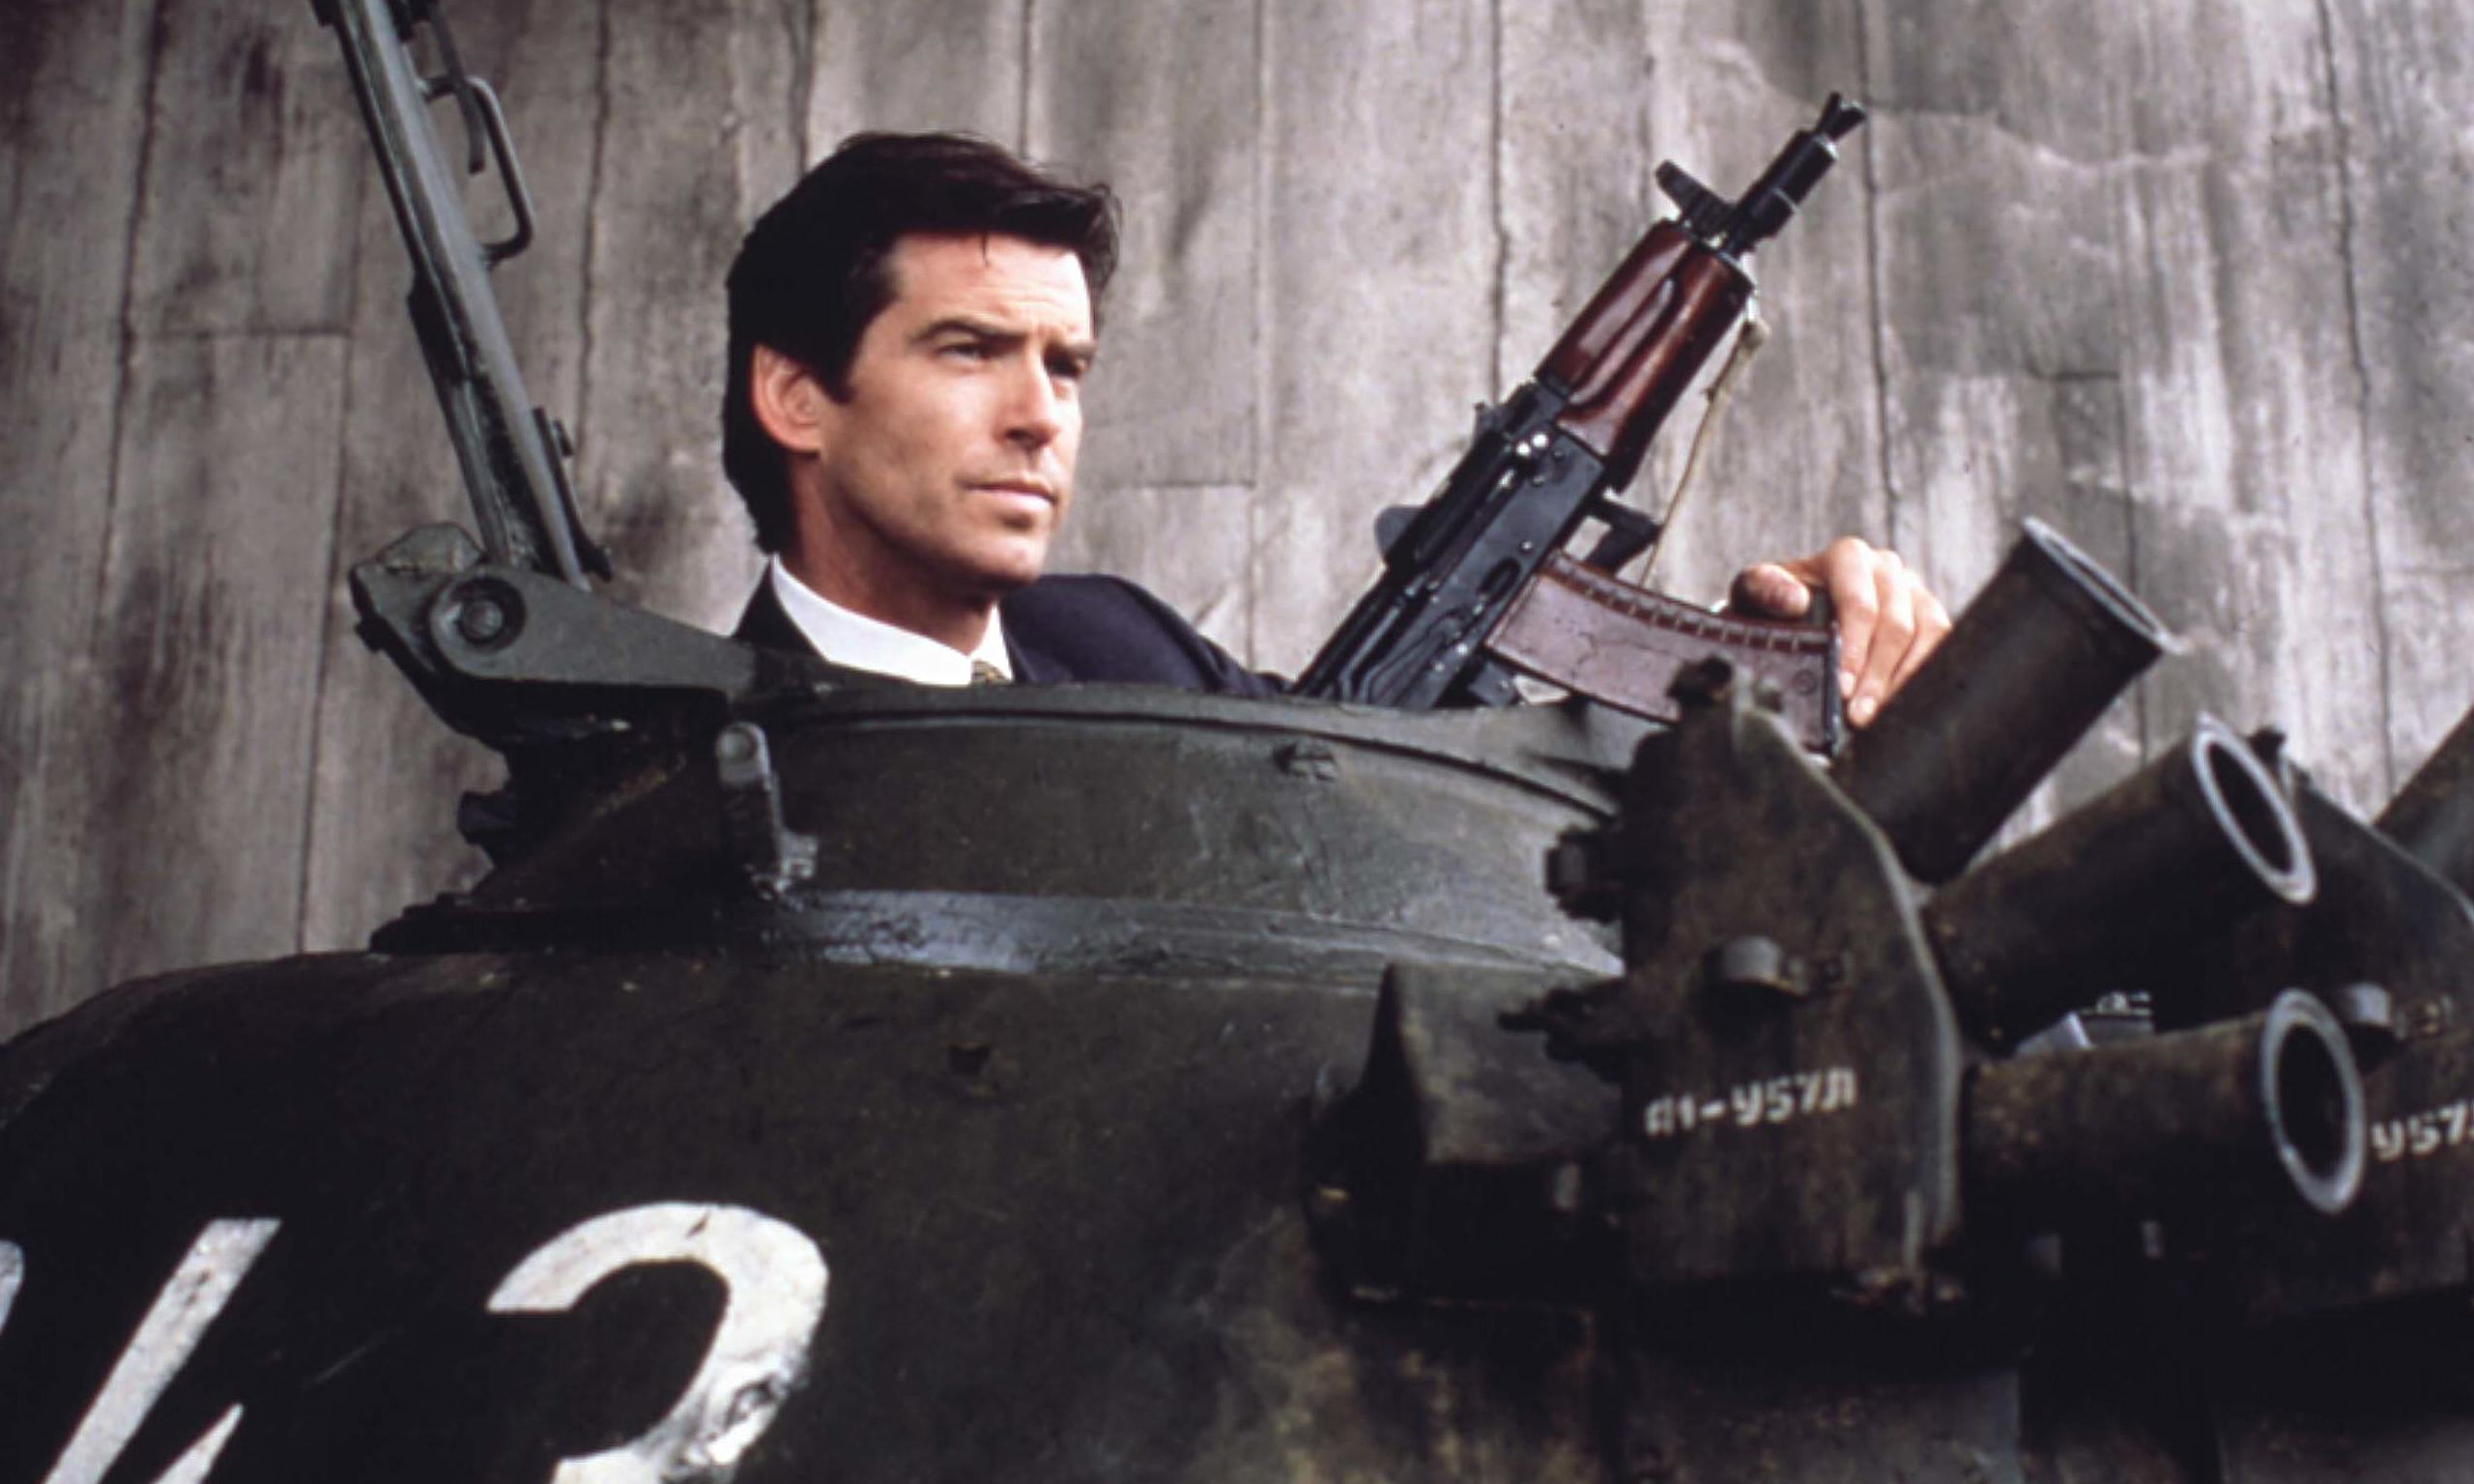 Pierce Brosnan Weighs In On Who The Next James Bond Will Be Pierce Brosnan in GoldenE 008 Ronald Grant Archive